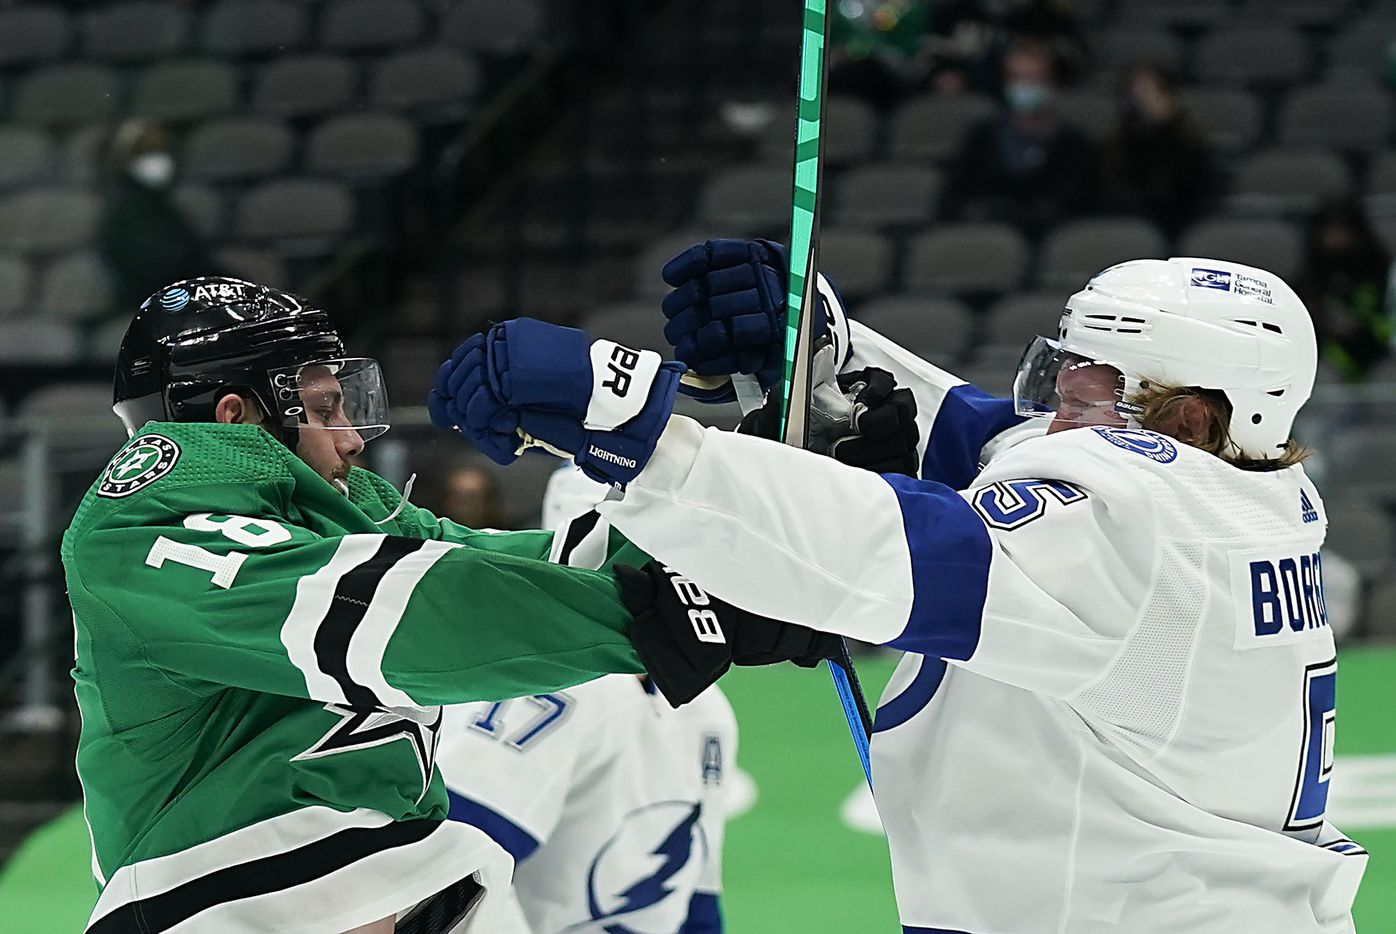 Dallas Stars center Jason Dickinson (18) tussles with Tampa Bay Lightning defenseman Andreas Borgman (5) during the first period of an NHL hockey game at the American Airlines Center on Thursday, March 25, 2021, in Dallas. (Smiley N. Pool/The Dallas Morning News)